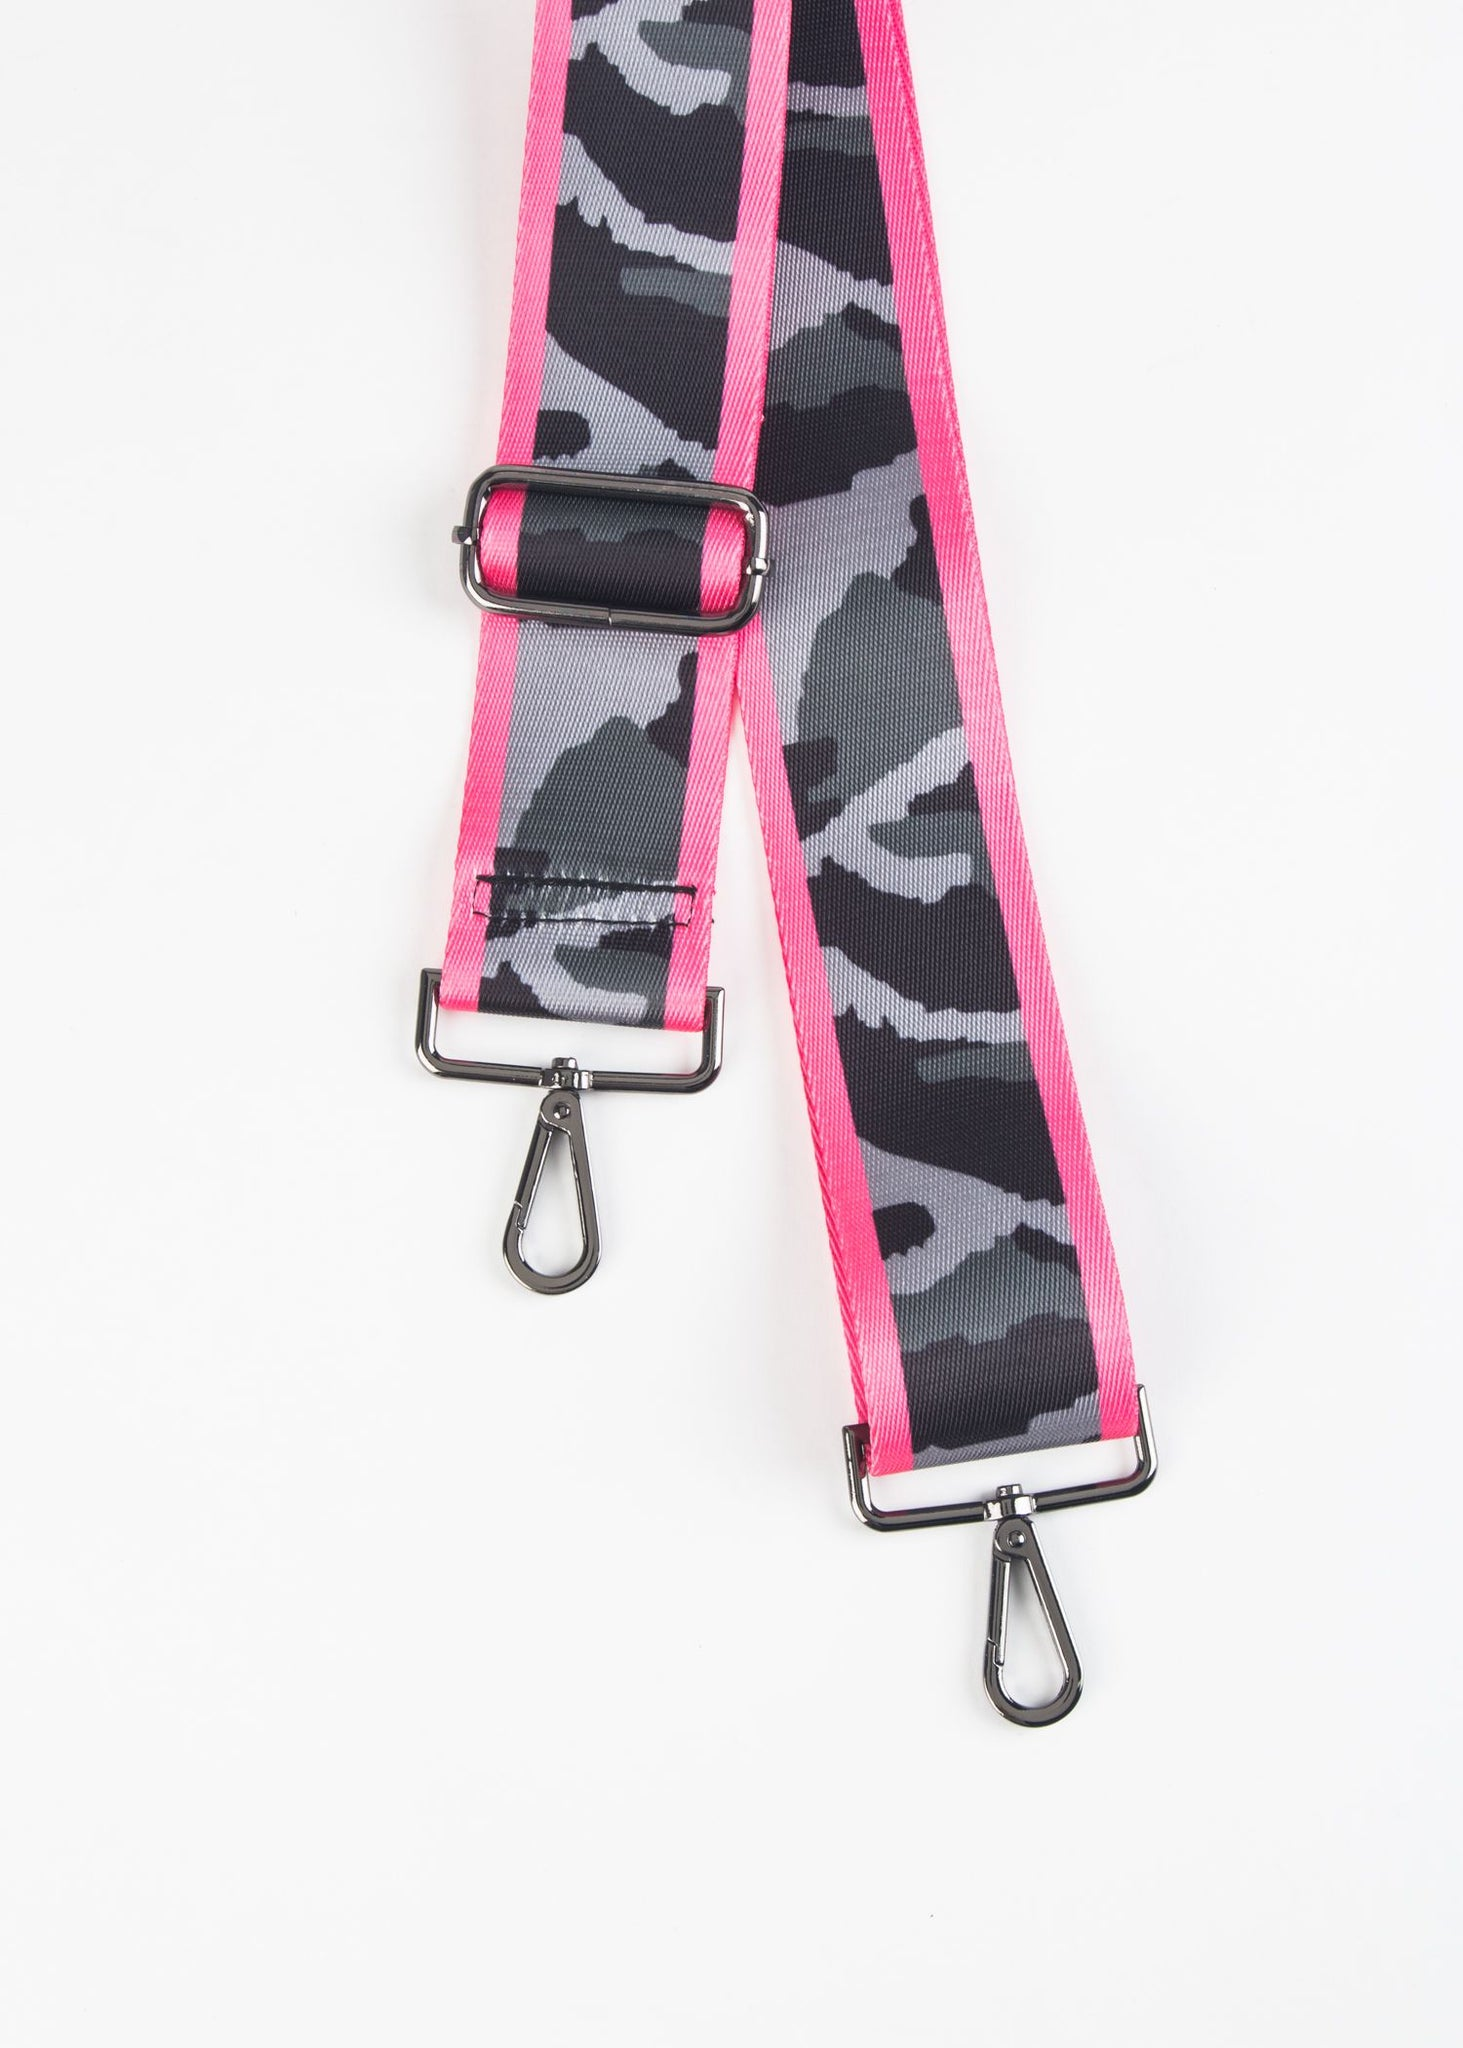 ADJUSTABLE CAMO HANDBAG STRAP